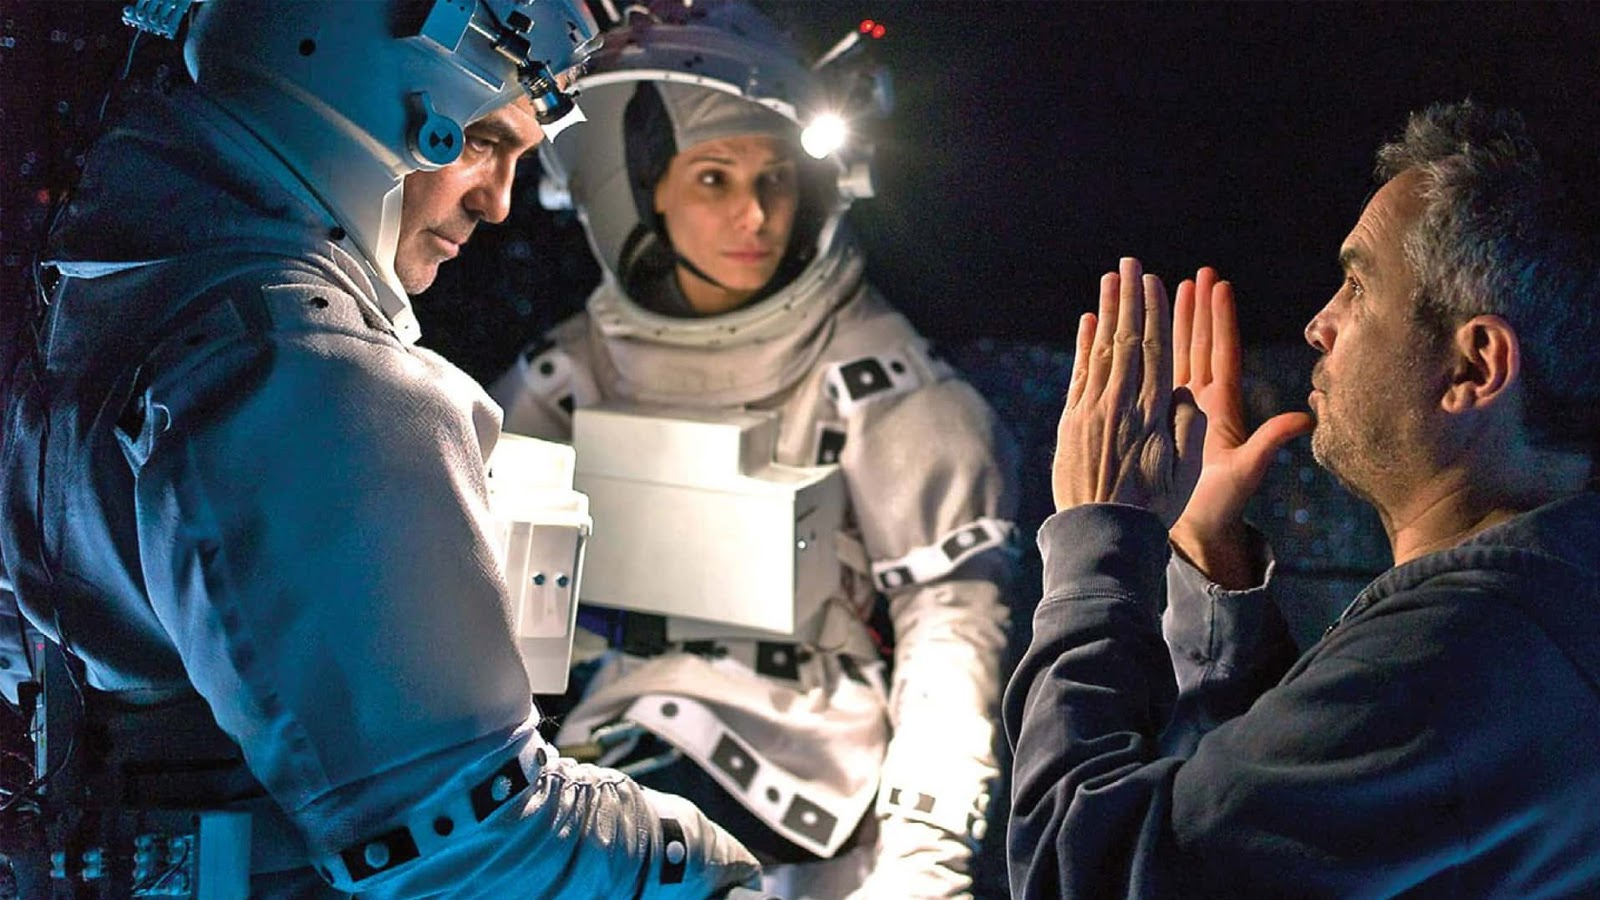 Cuaron, Bullock, and Clooney on set for Gravity